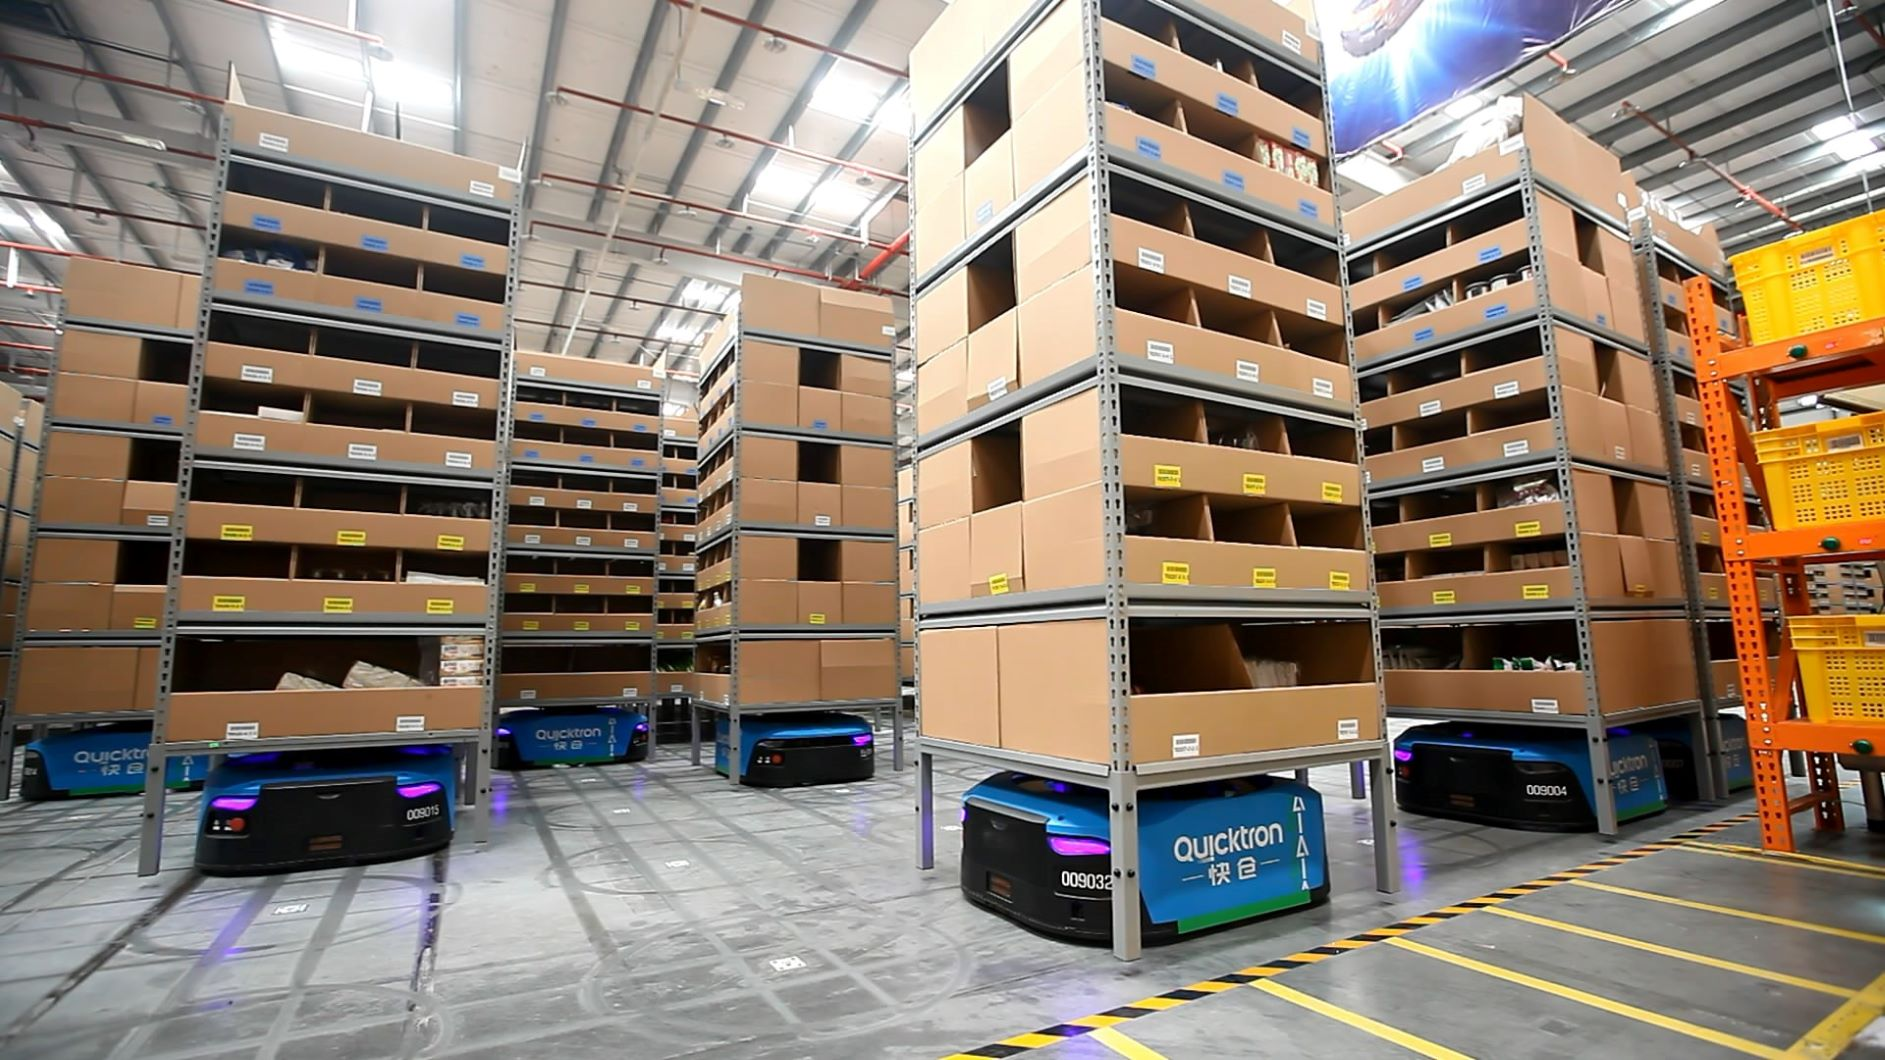 Small robots move bins of goods in an automated warehouse.